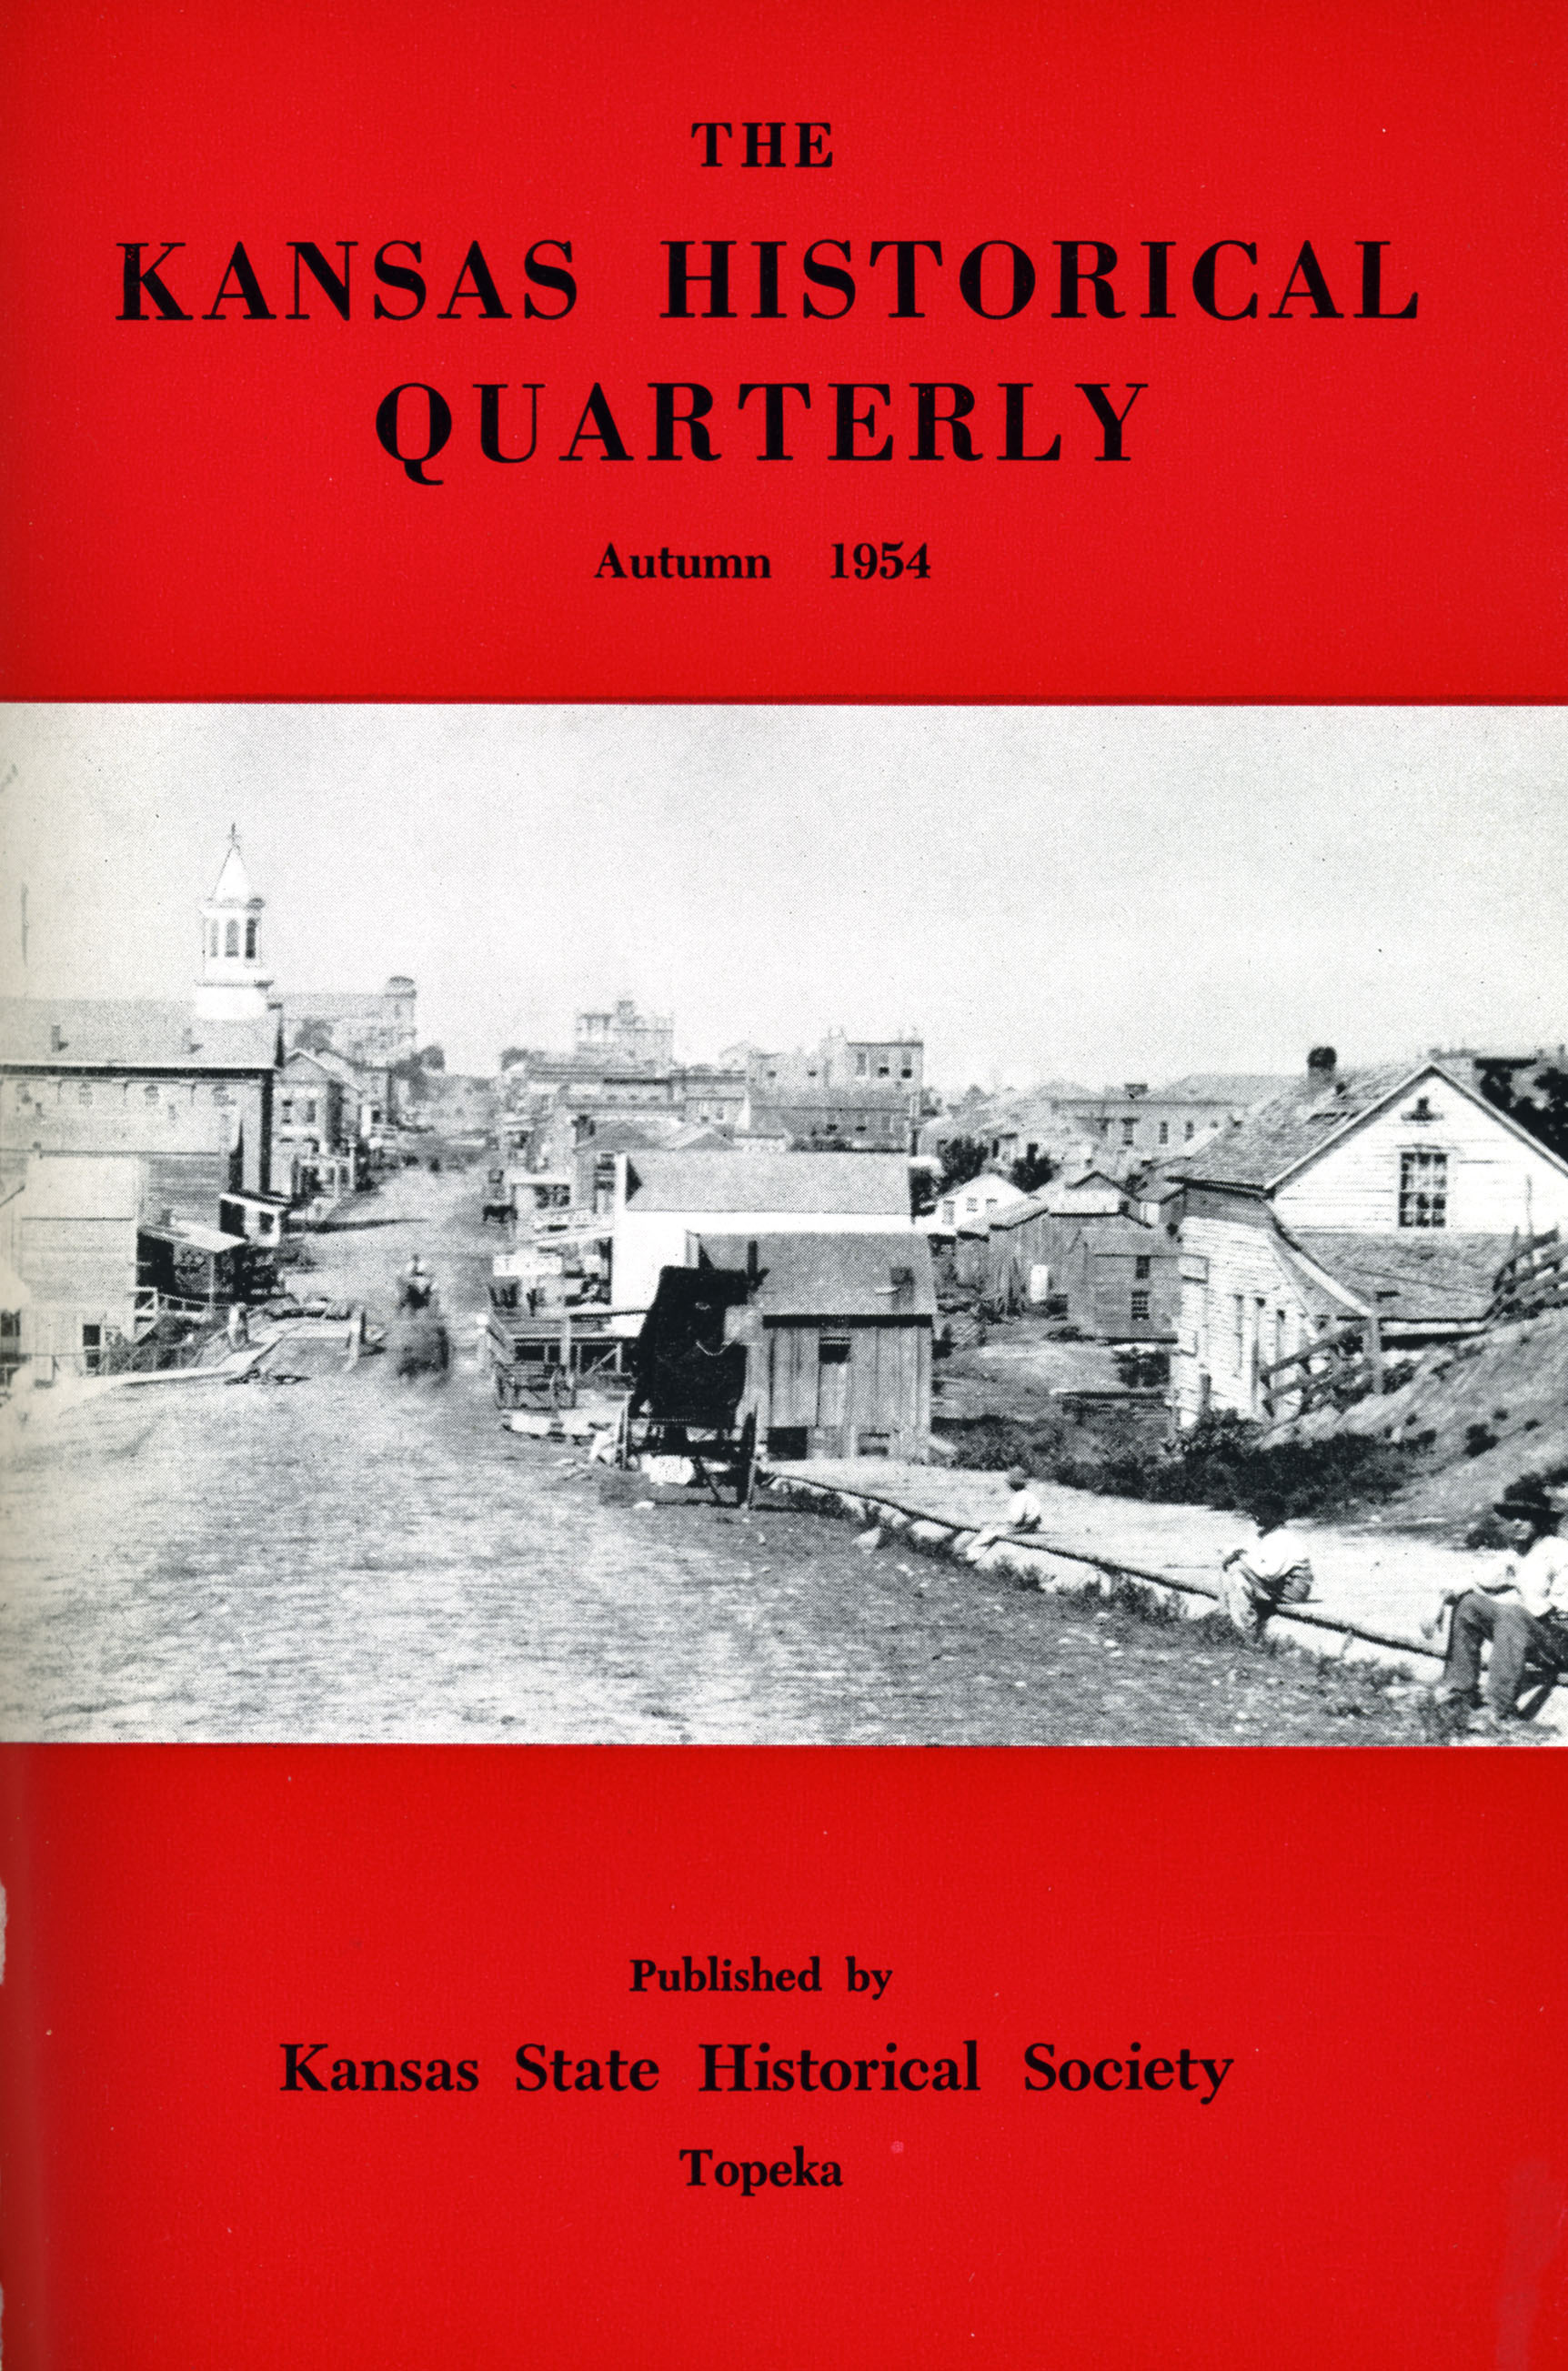 Kansas Historical Quarterly, Autumn 1954